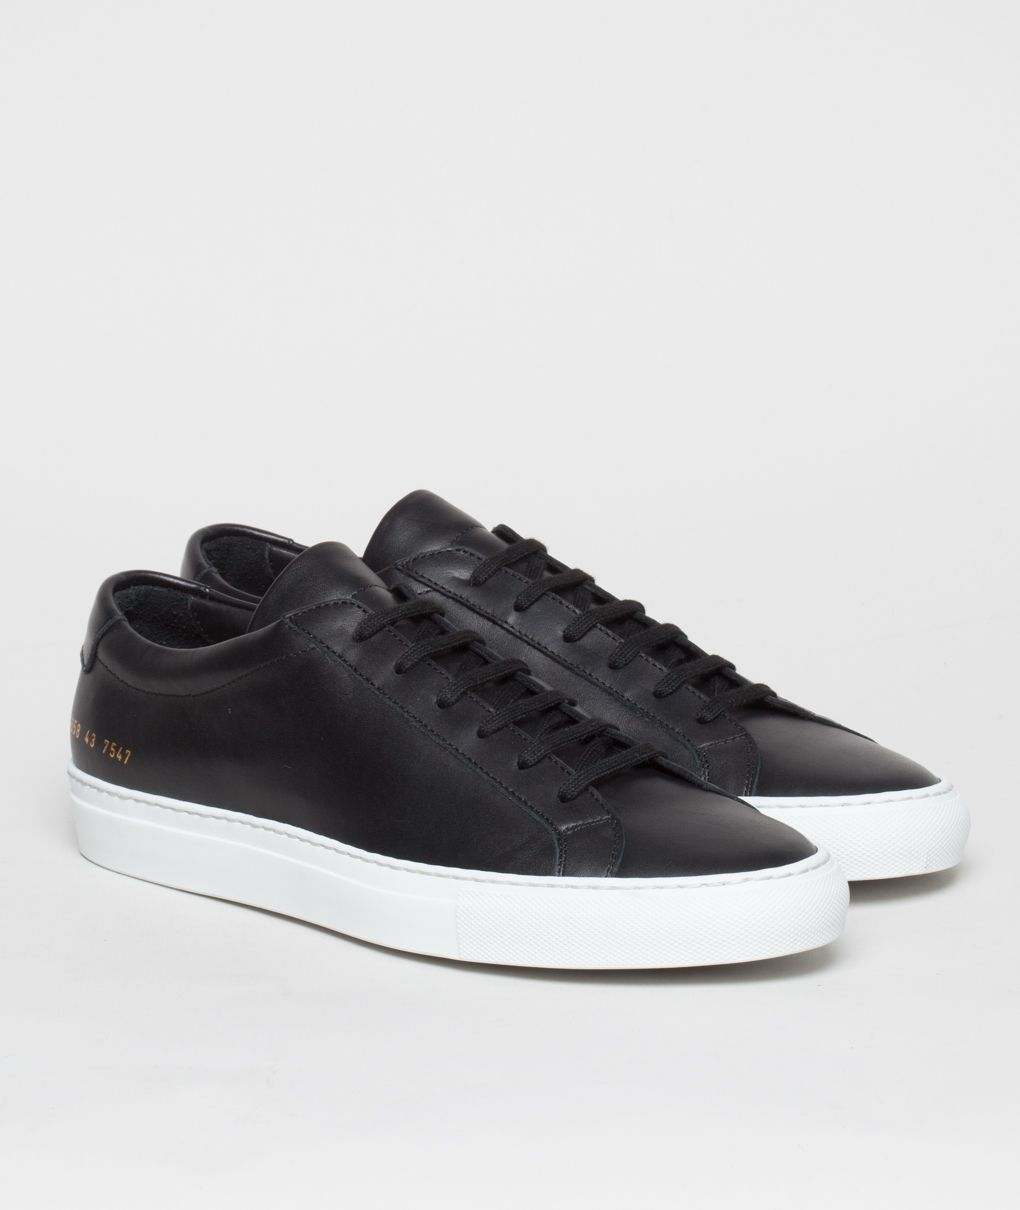 e757167de2f25 Common Projects Achilles Low Black White